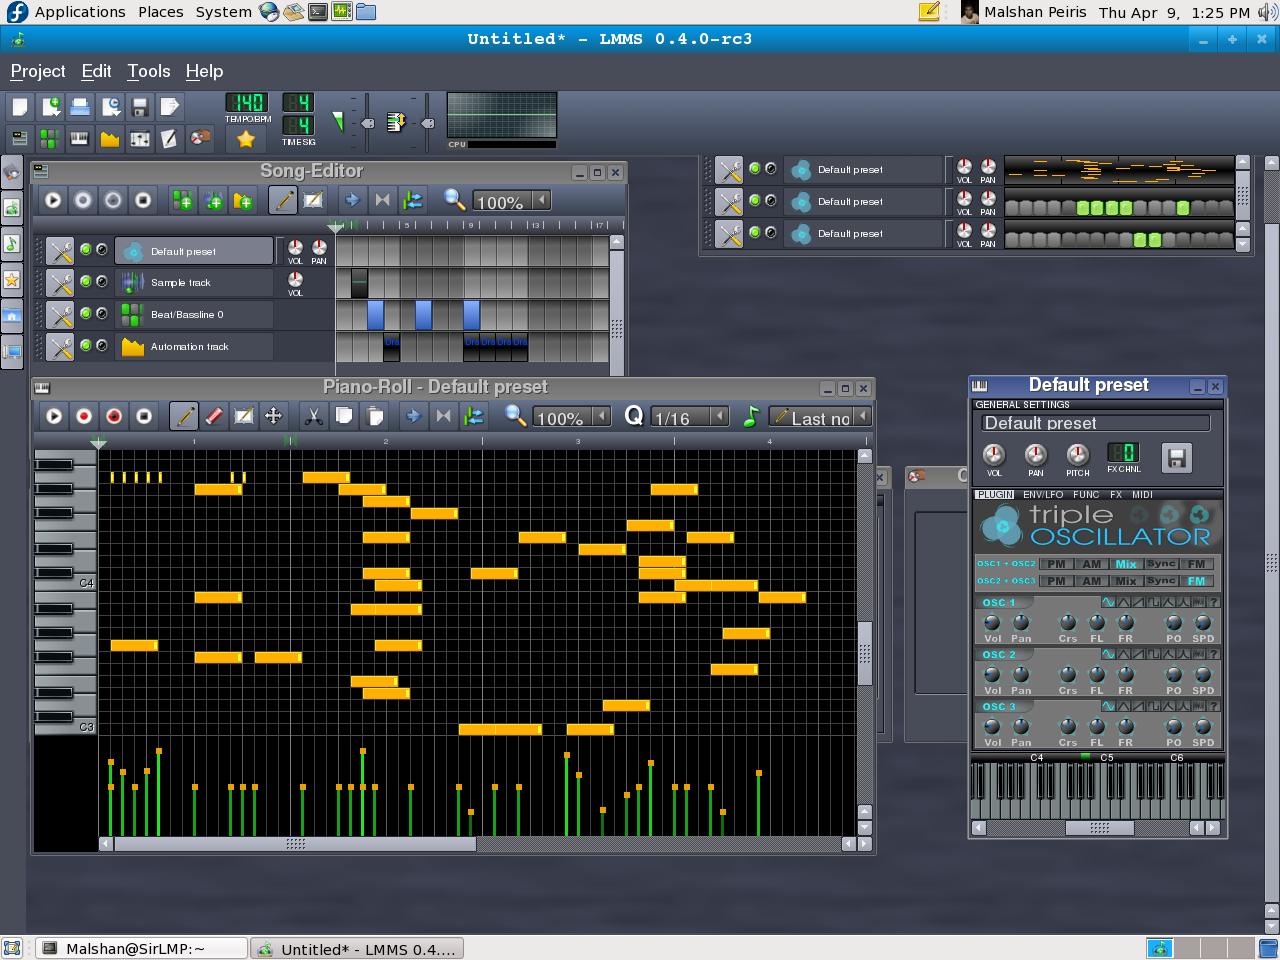 LMMS 0.4.0 - RC3 running on Qt 4.3.4 on ...